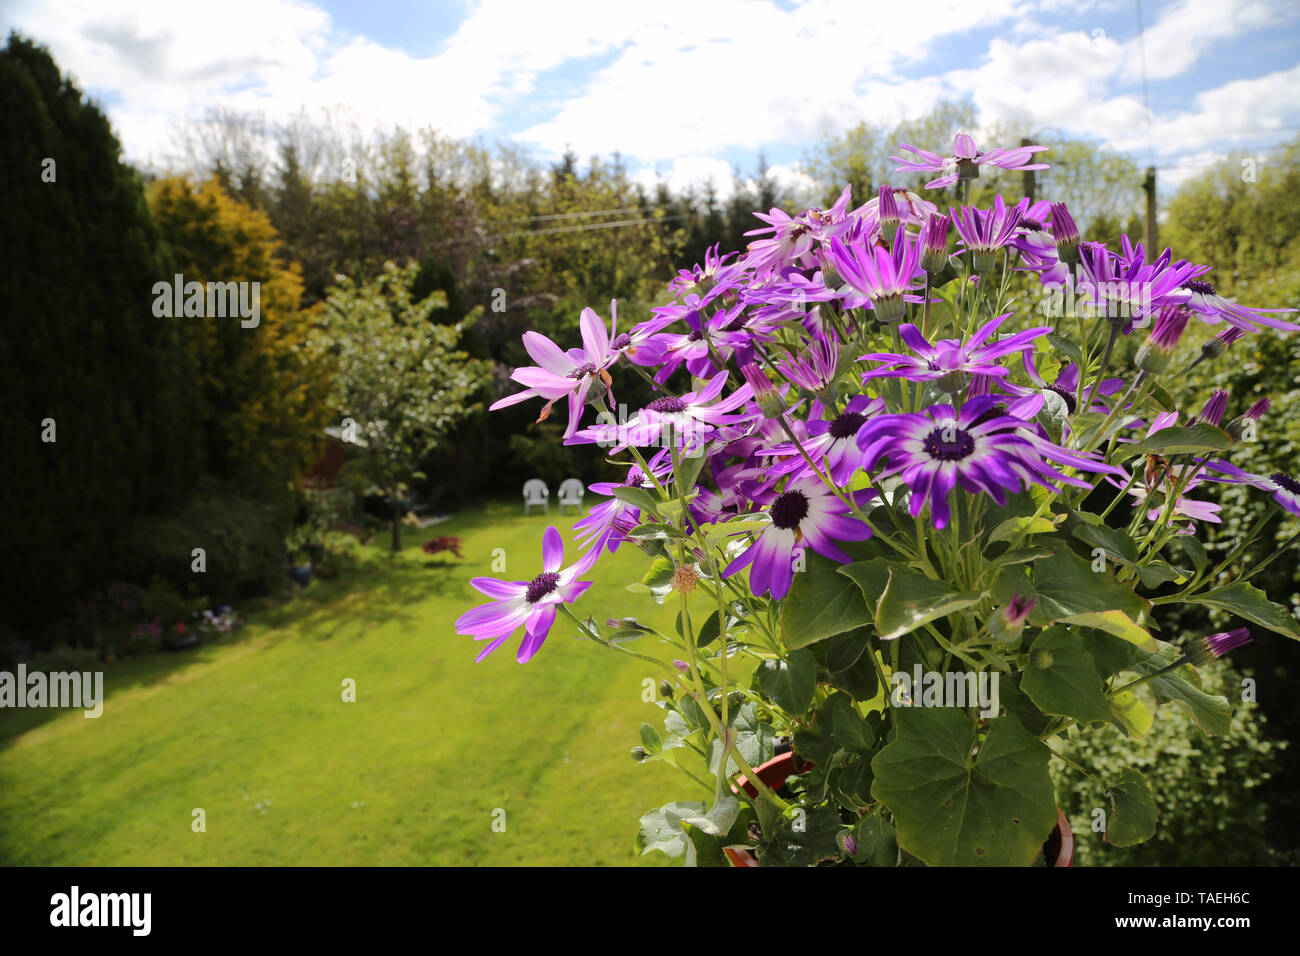 Violet senetti Flowers in the foreground with a green lawn and white deckchairs in the background - Stock Image